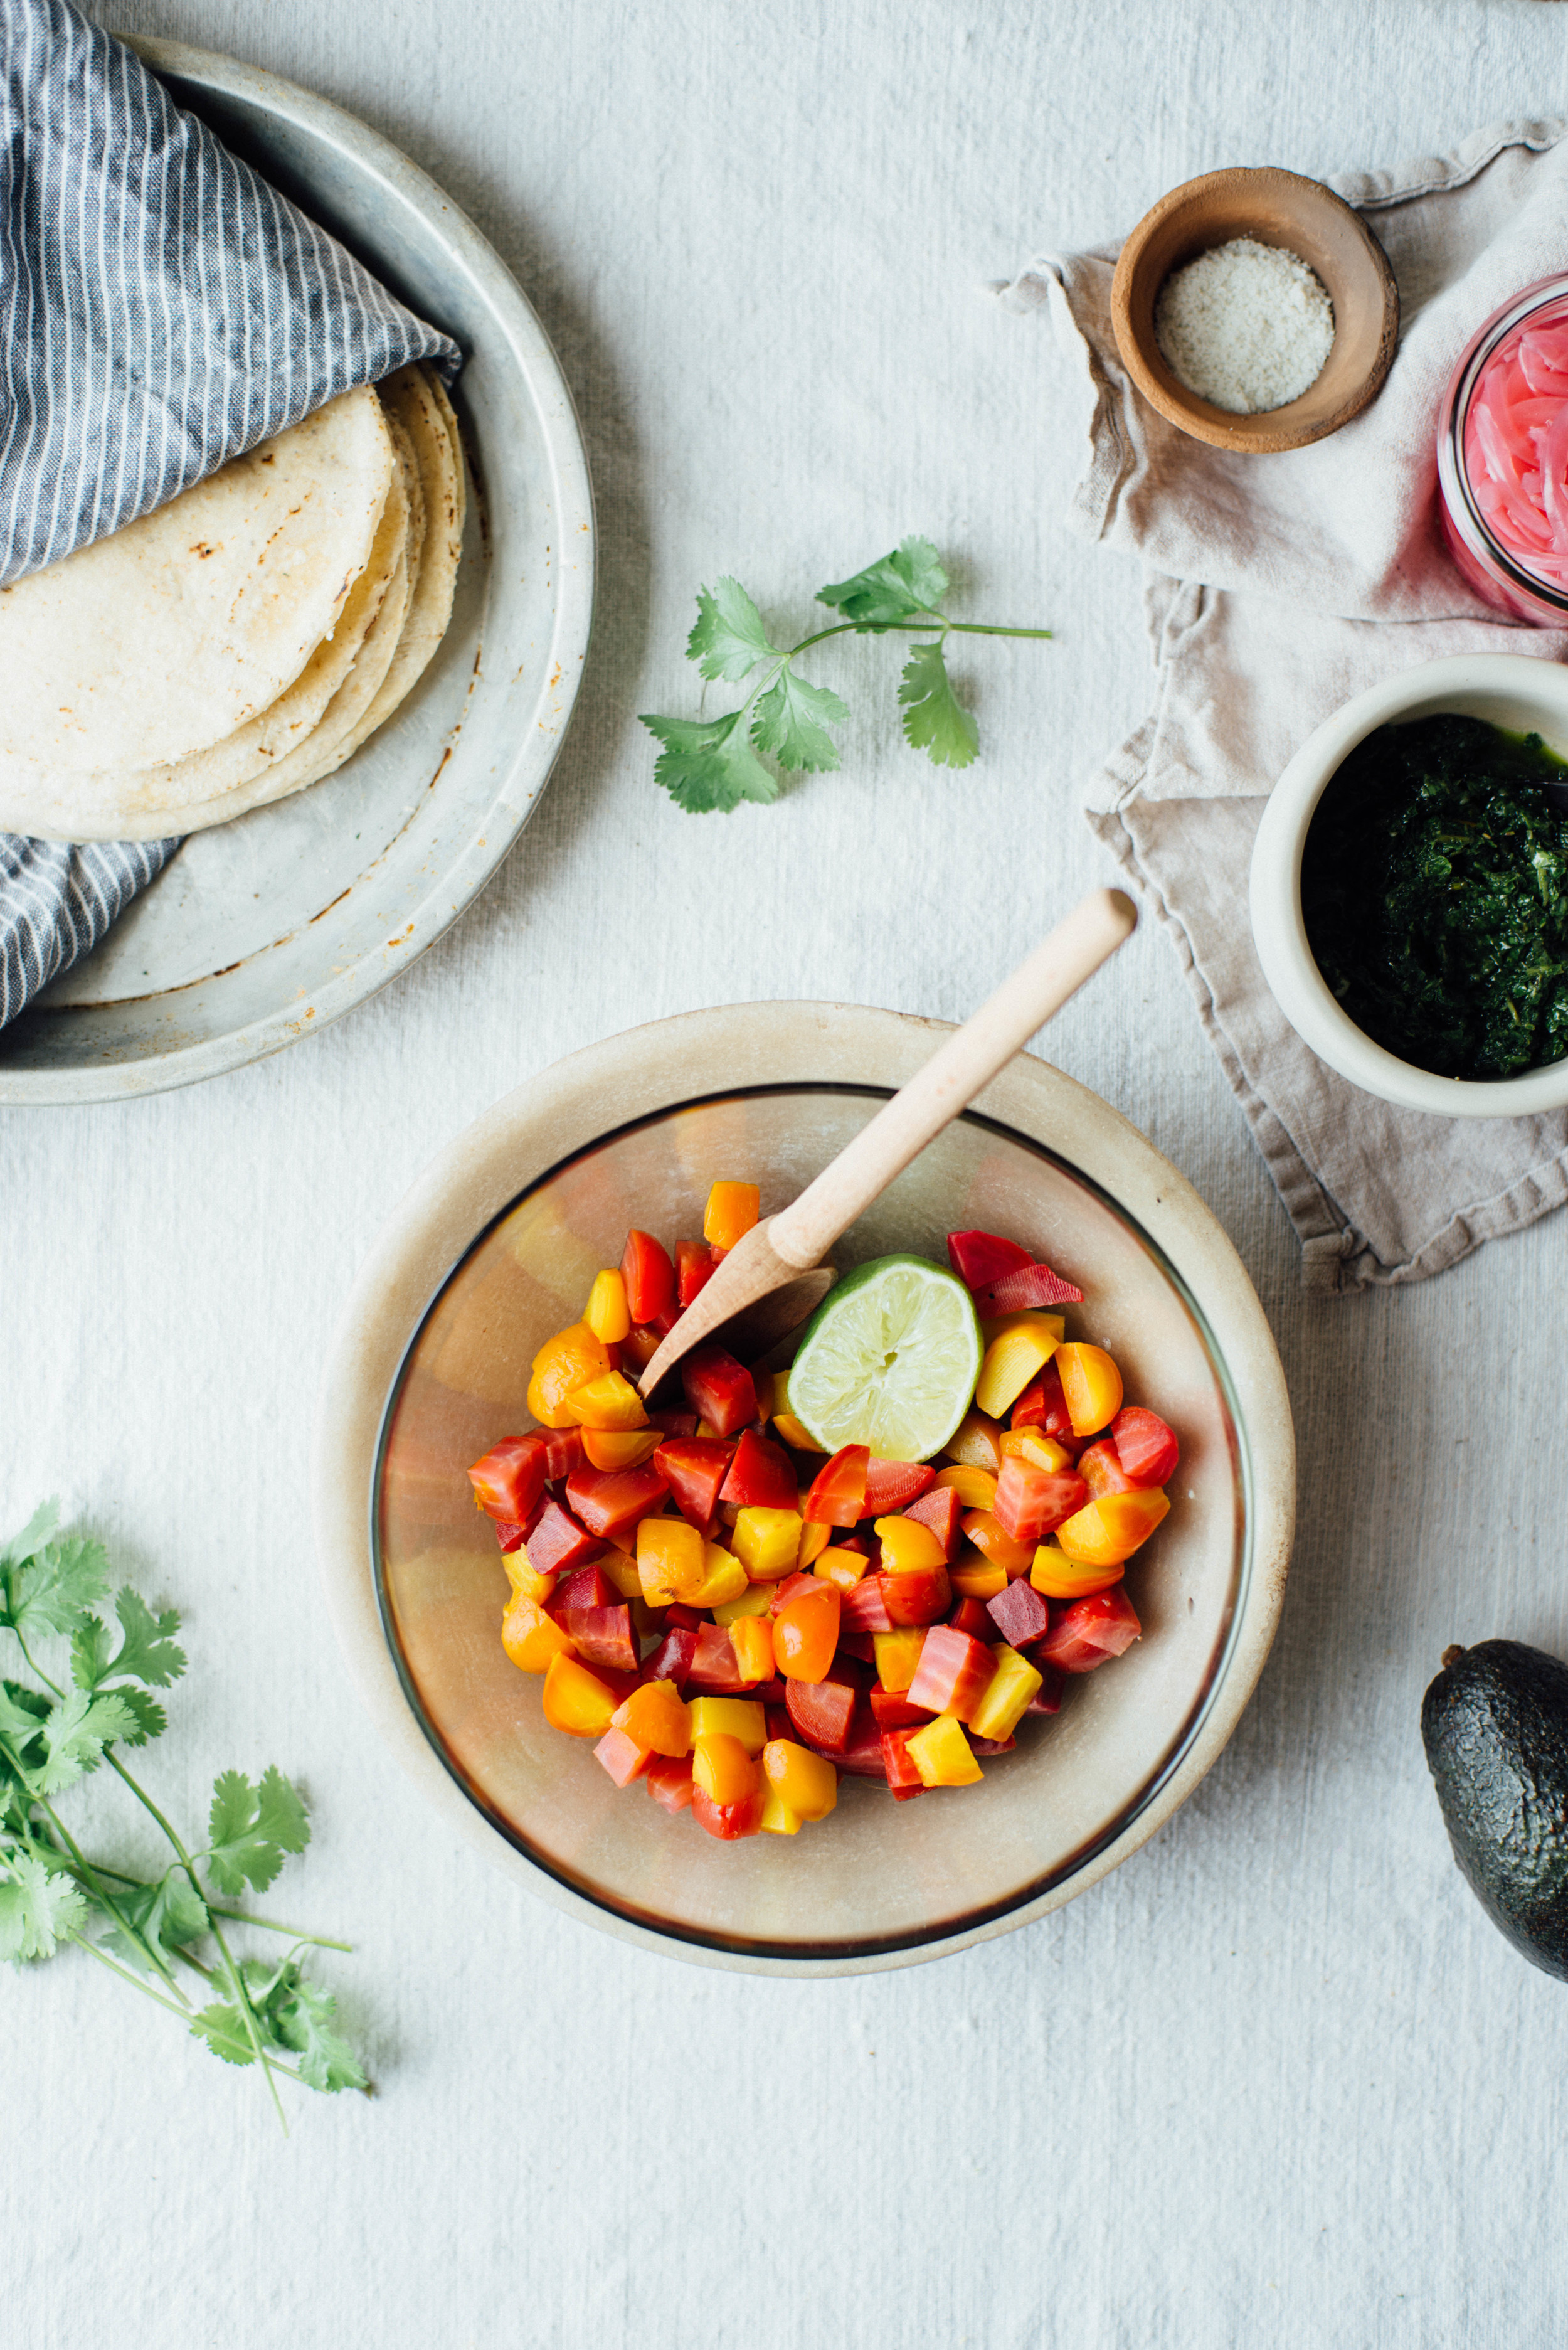 beet tacos w/ beet green salsa verde | dolly and oatmeal